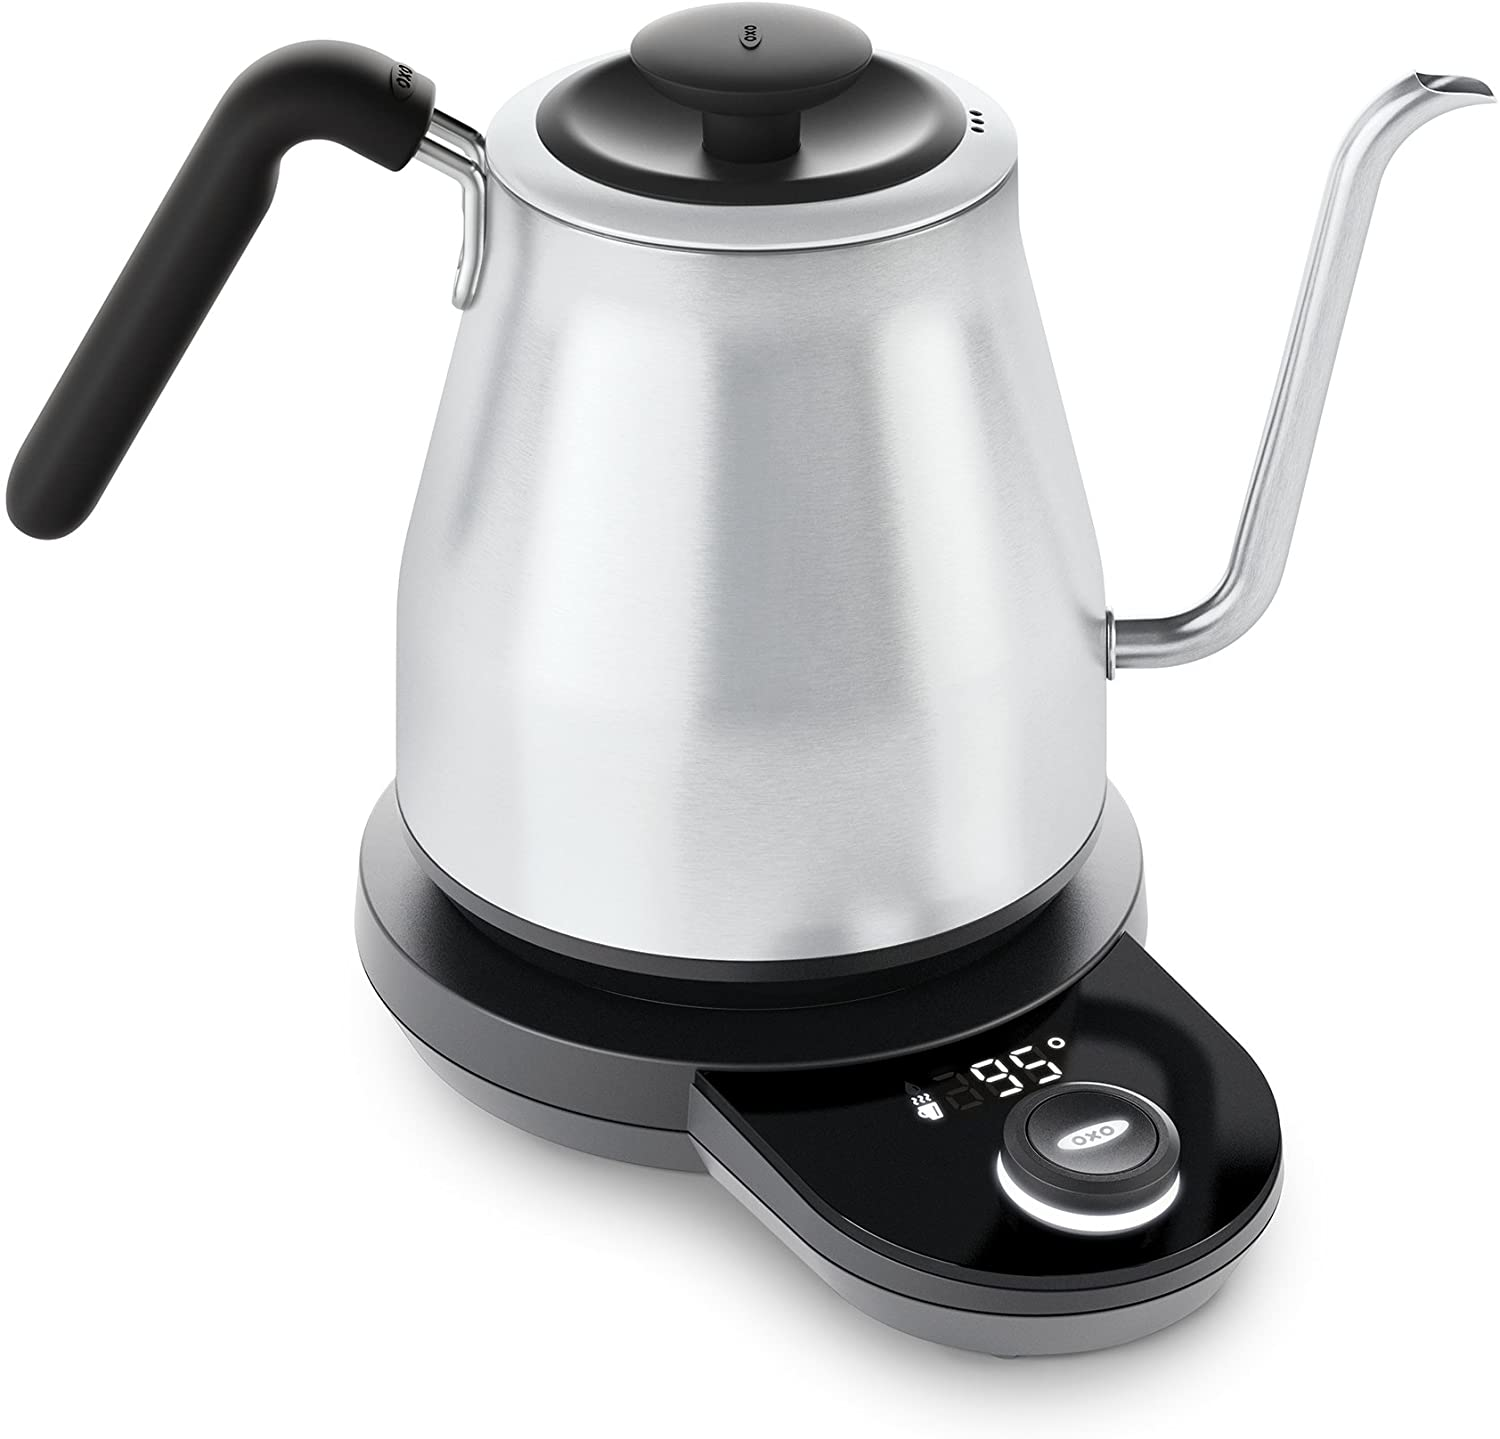 OXO Brew Electric Kettle Review